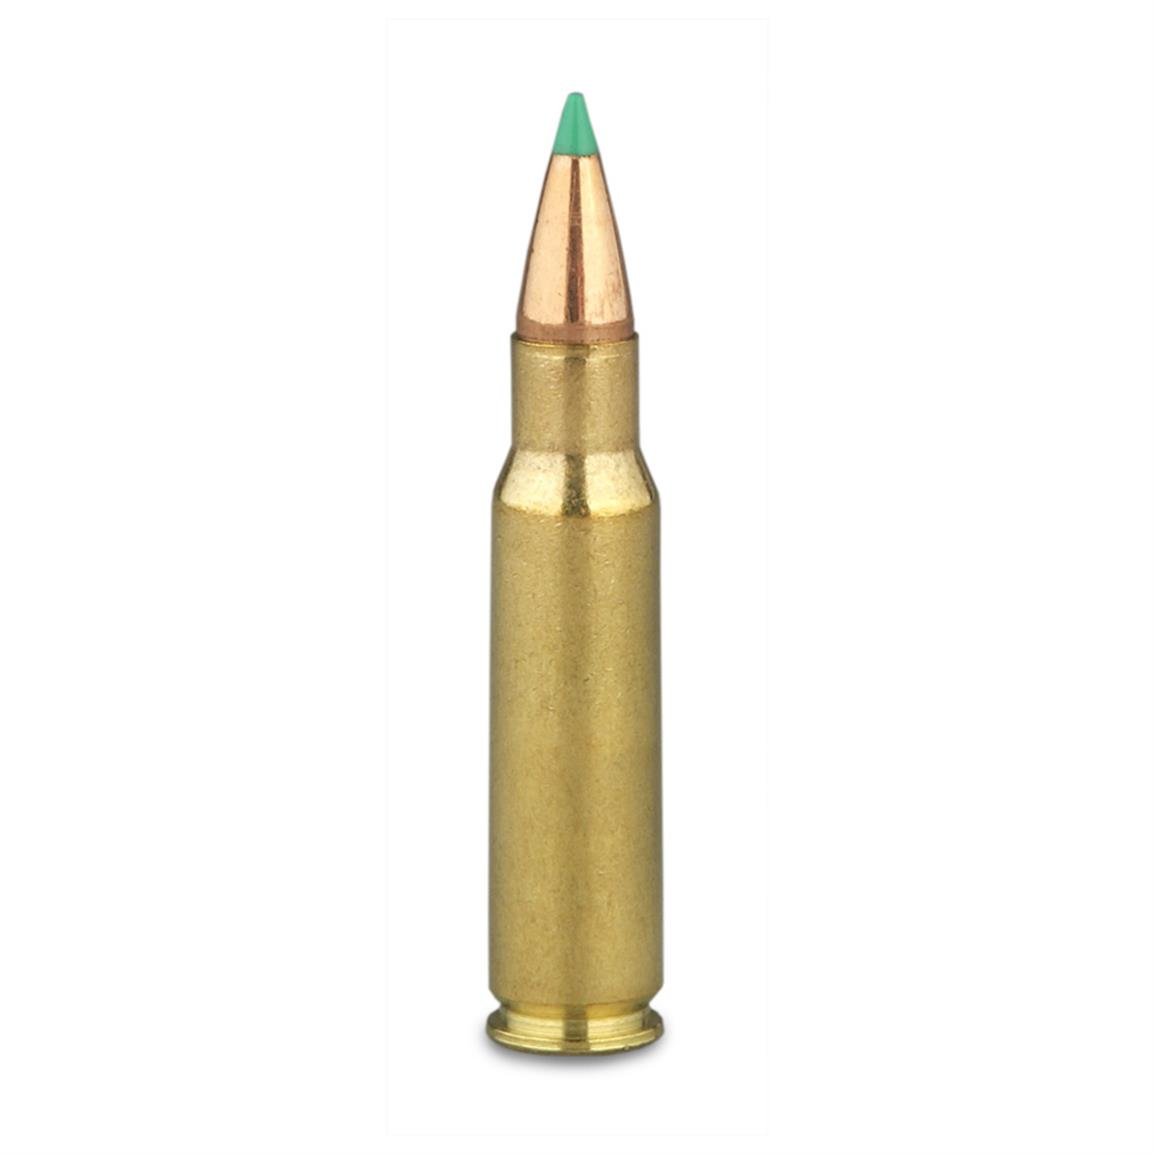 110 grain PTS polymer-tip bullet delivers high velocity and flat trajectory, and won't shatter